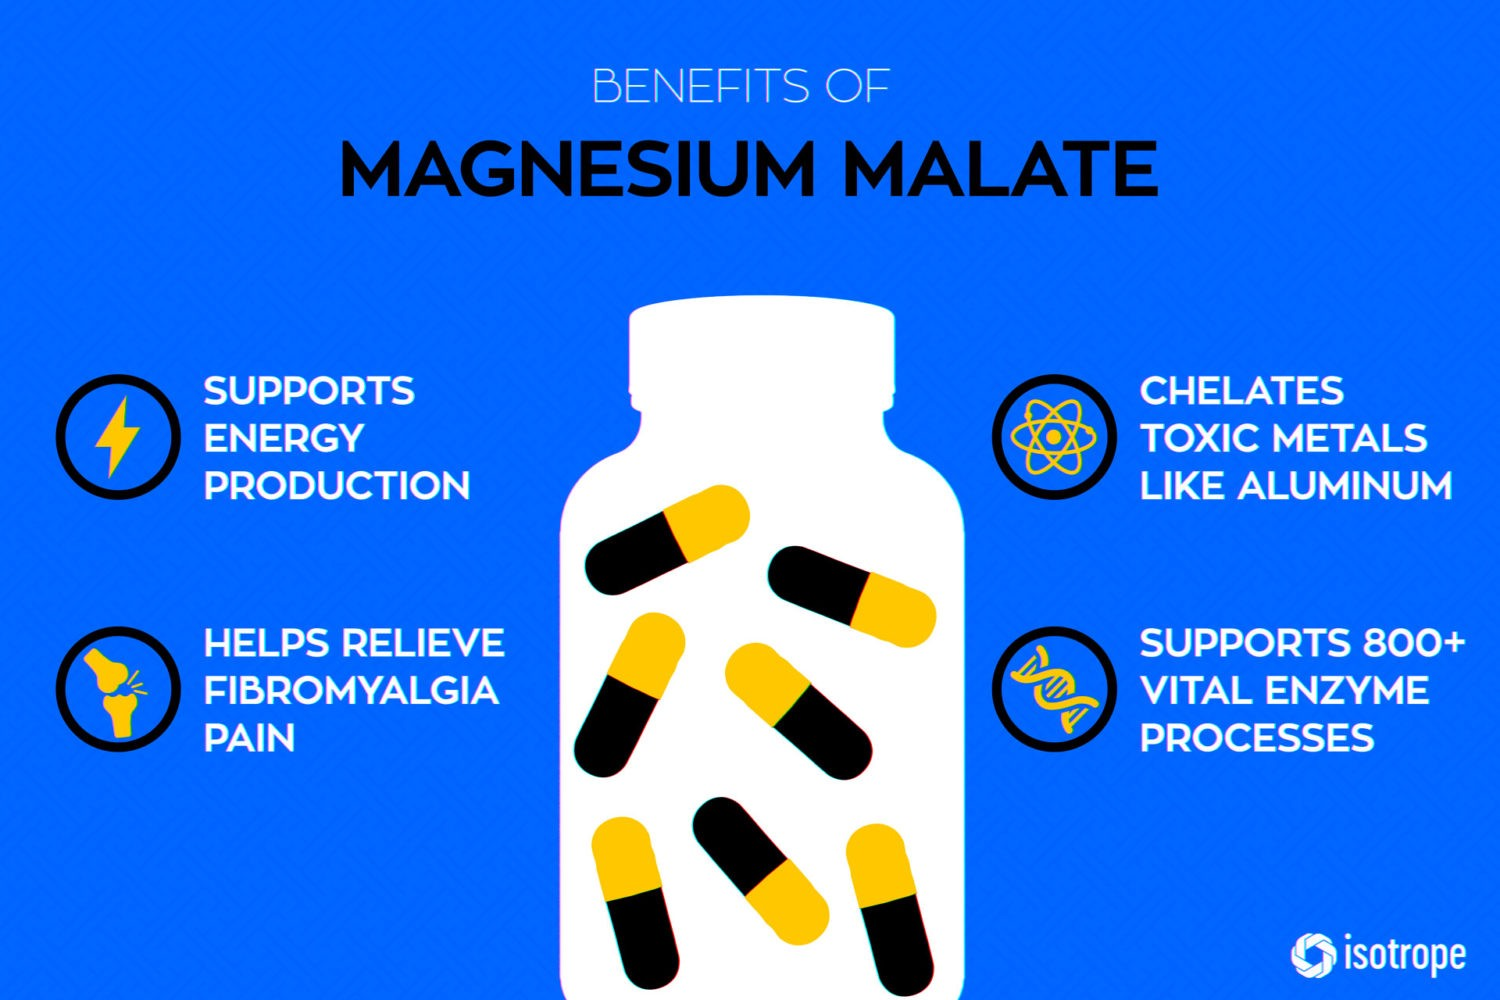 Magnesium Malate: Supports Natural Energy Production